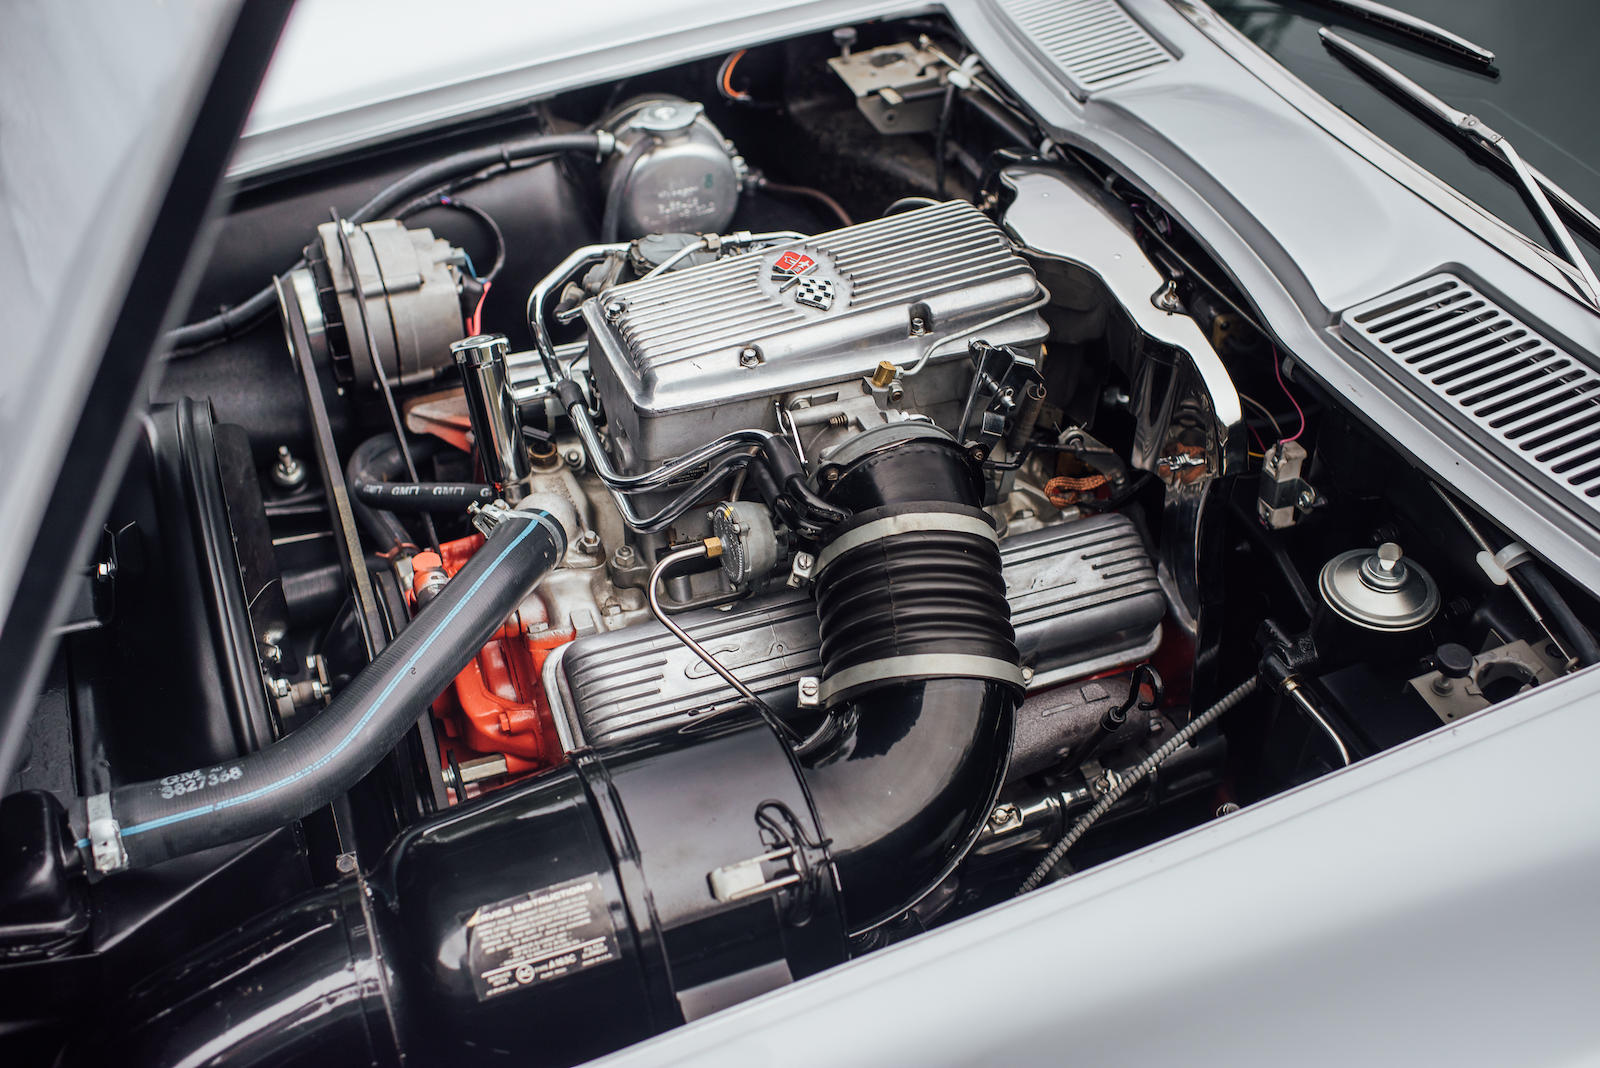 1963 Chevrolet Corvette 327 fuelie engine v8